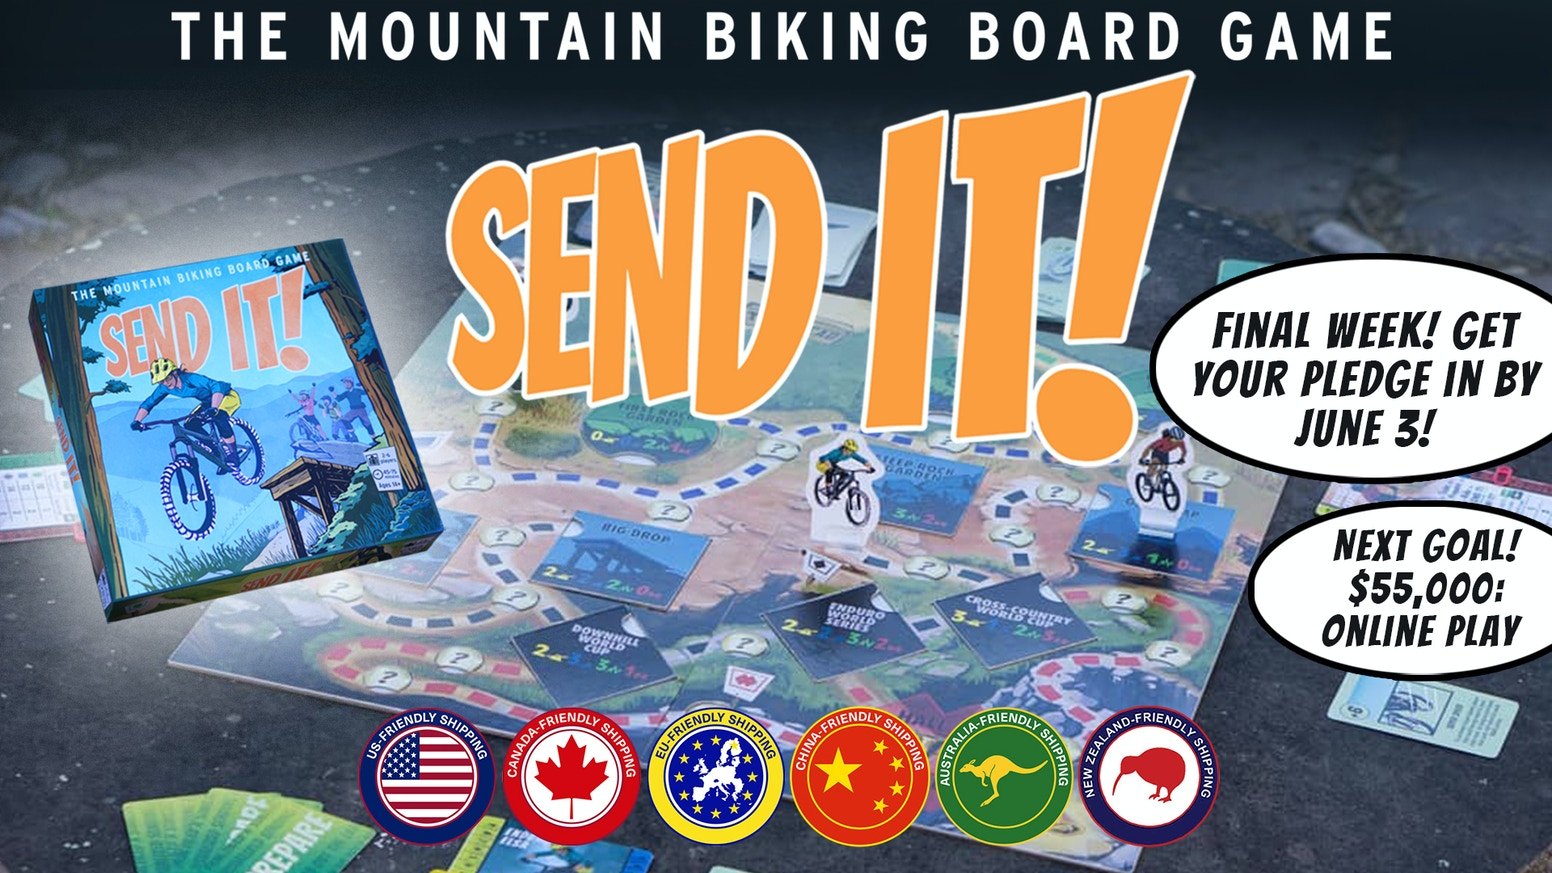 A mountain biking board game complete with riding, crashing, skill building and, of course...SENDING IT!